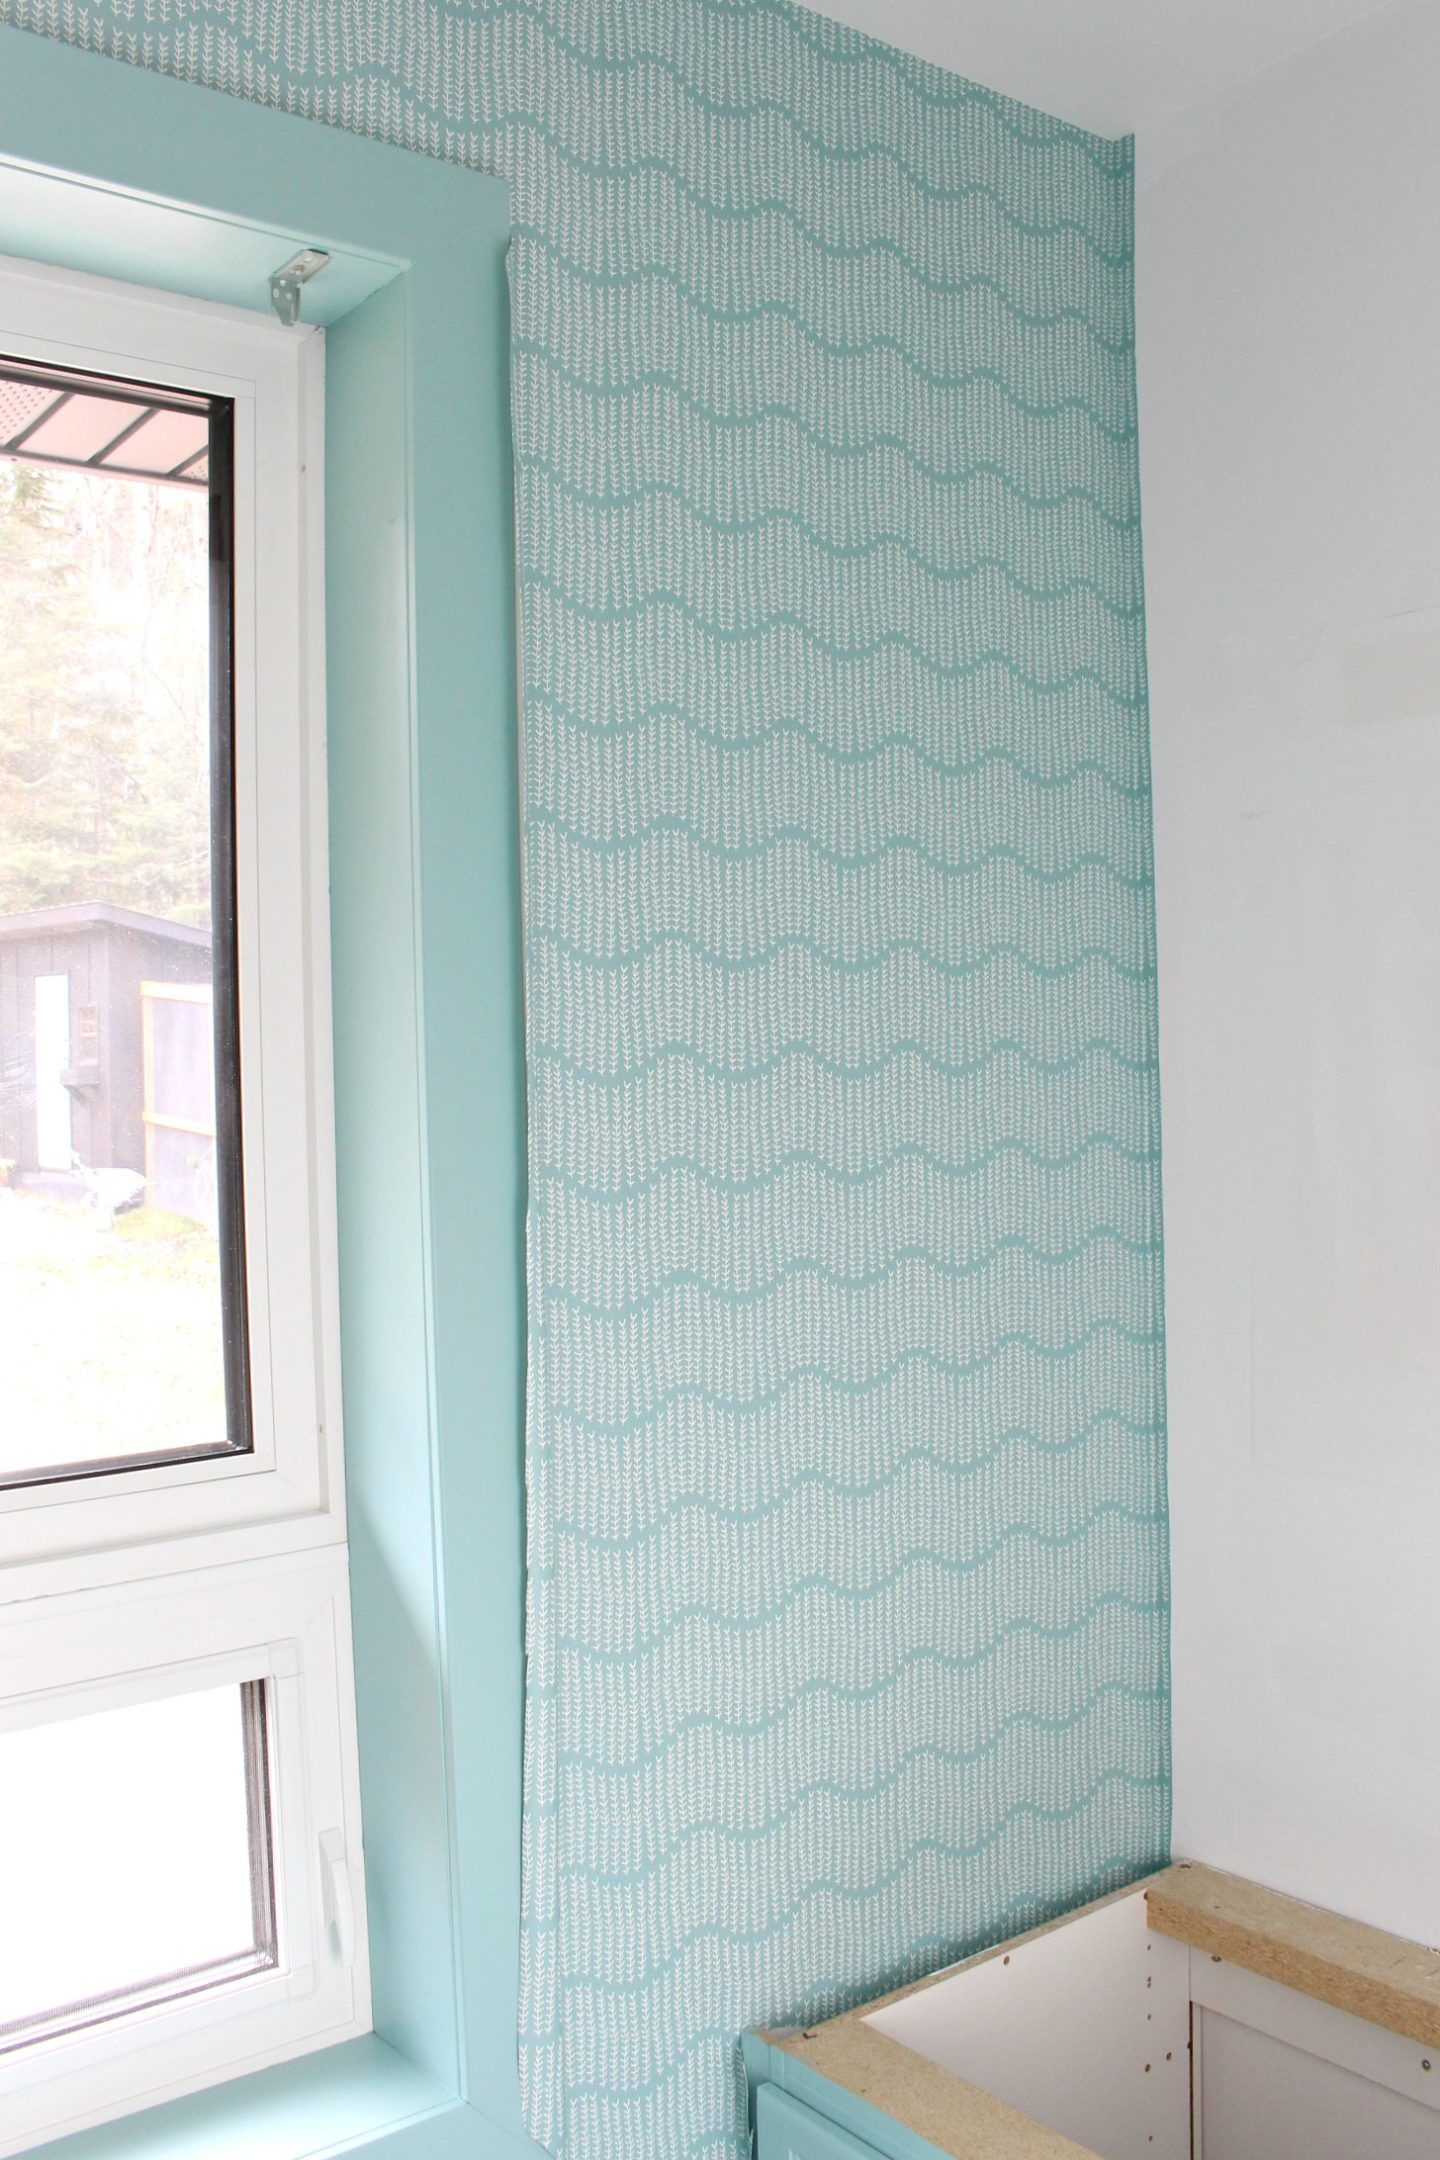 Diy Wallpapering For The First Time Spoonflower Prepasted Removable Wallpaper Review Dans Le Lakehouse In 2020 Removable Wallpaper Powder Room Small T Wallpaper